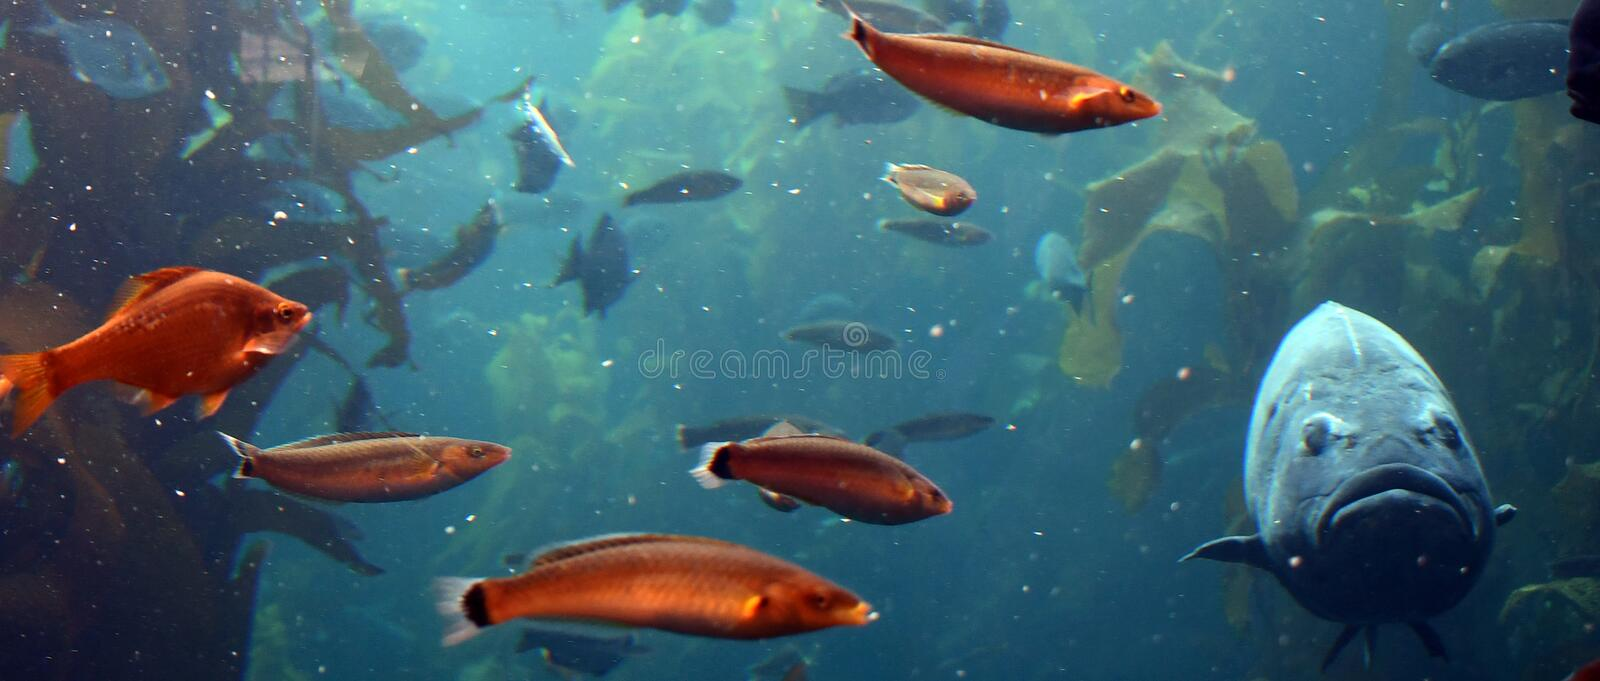 All the fish looked at the larg fish stock photos